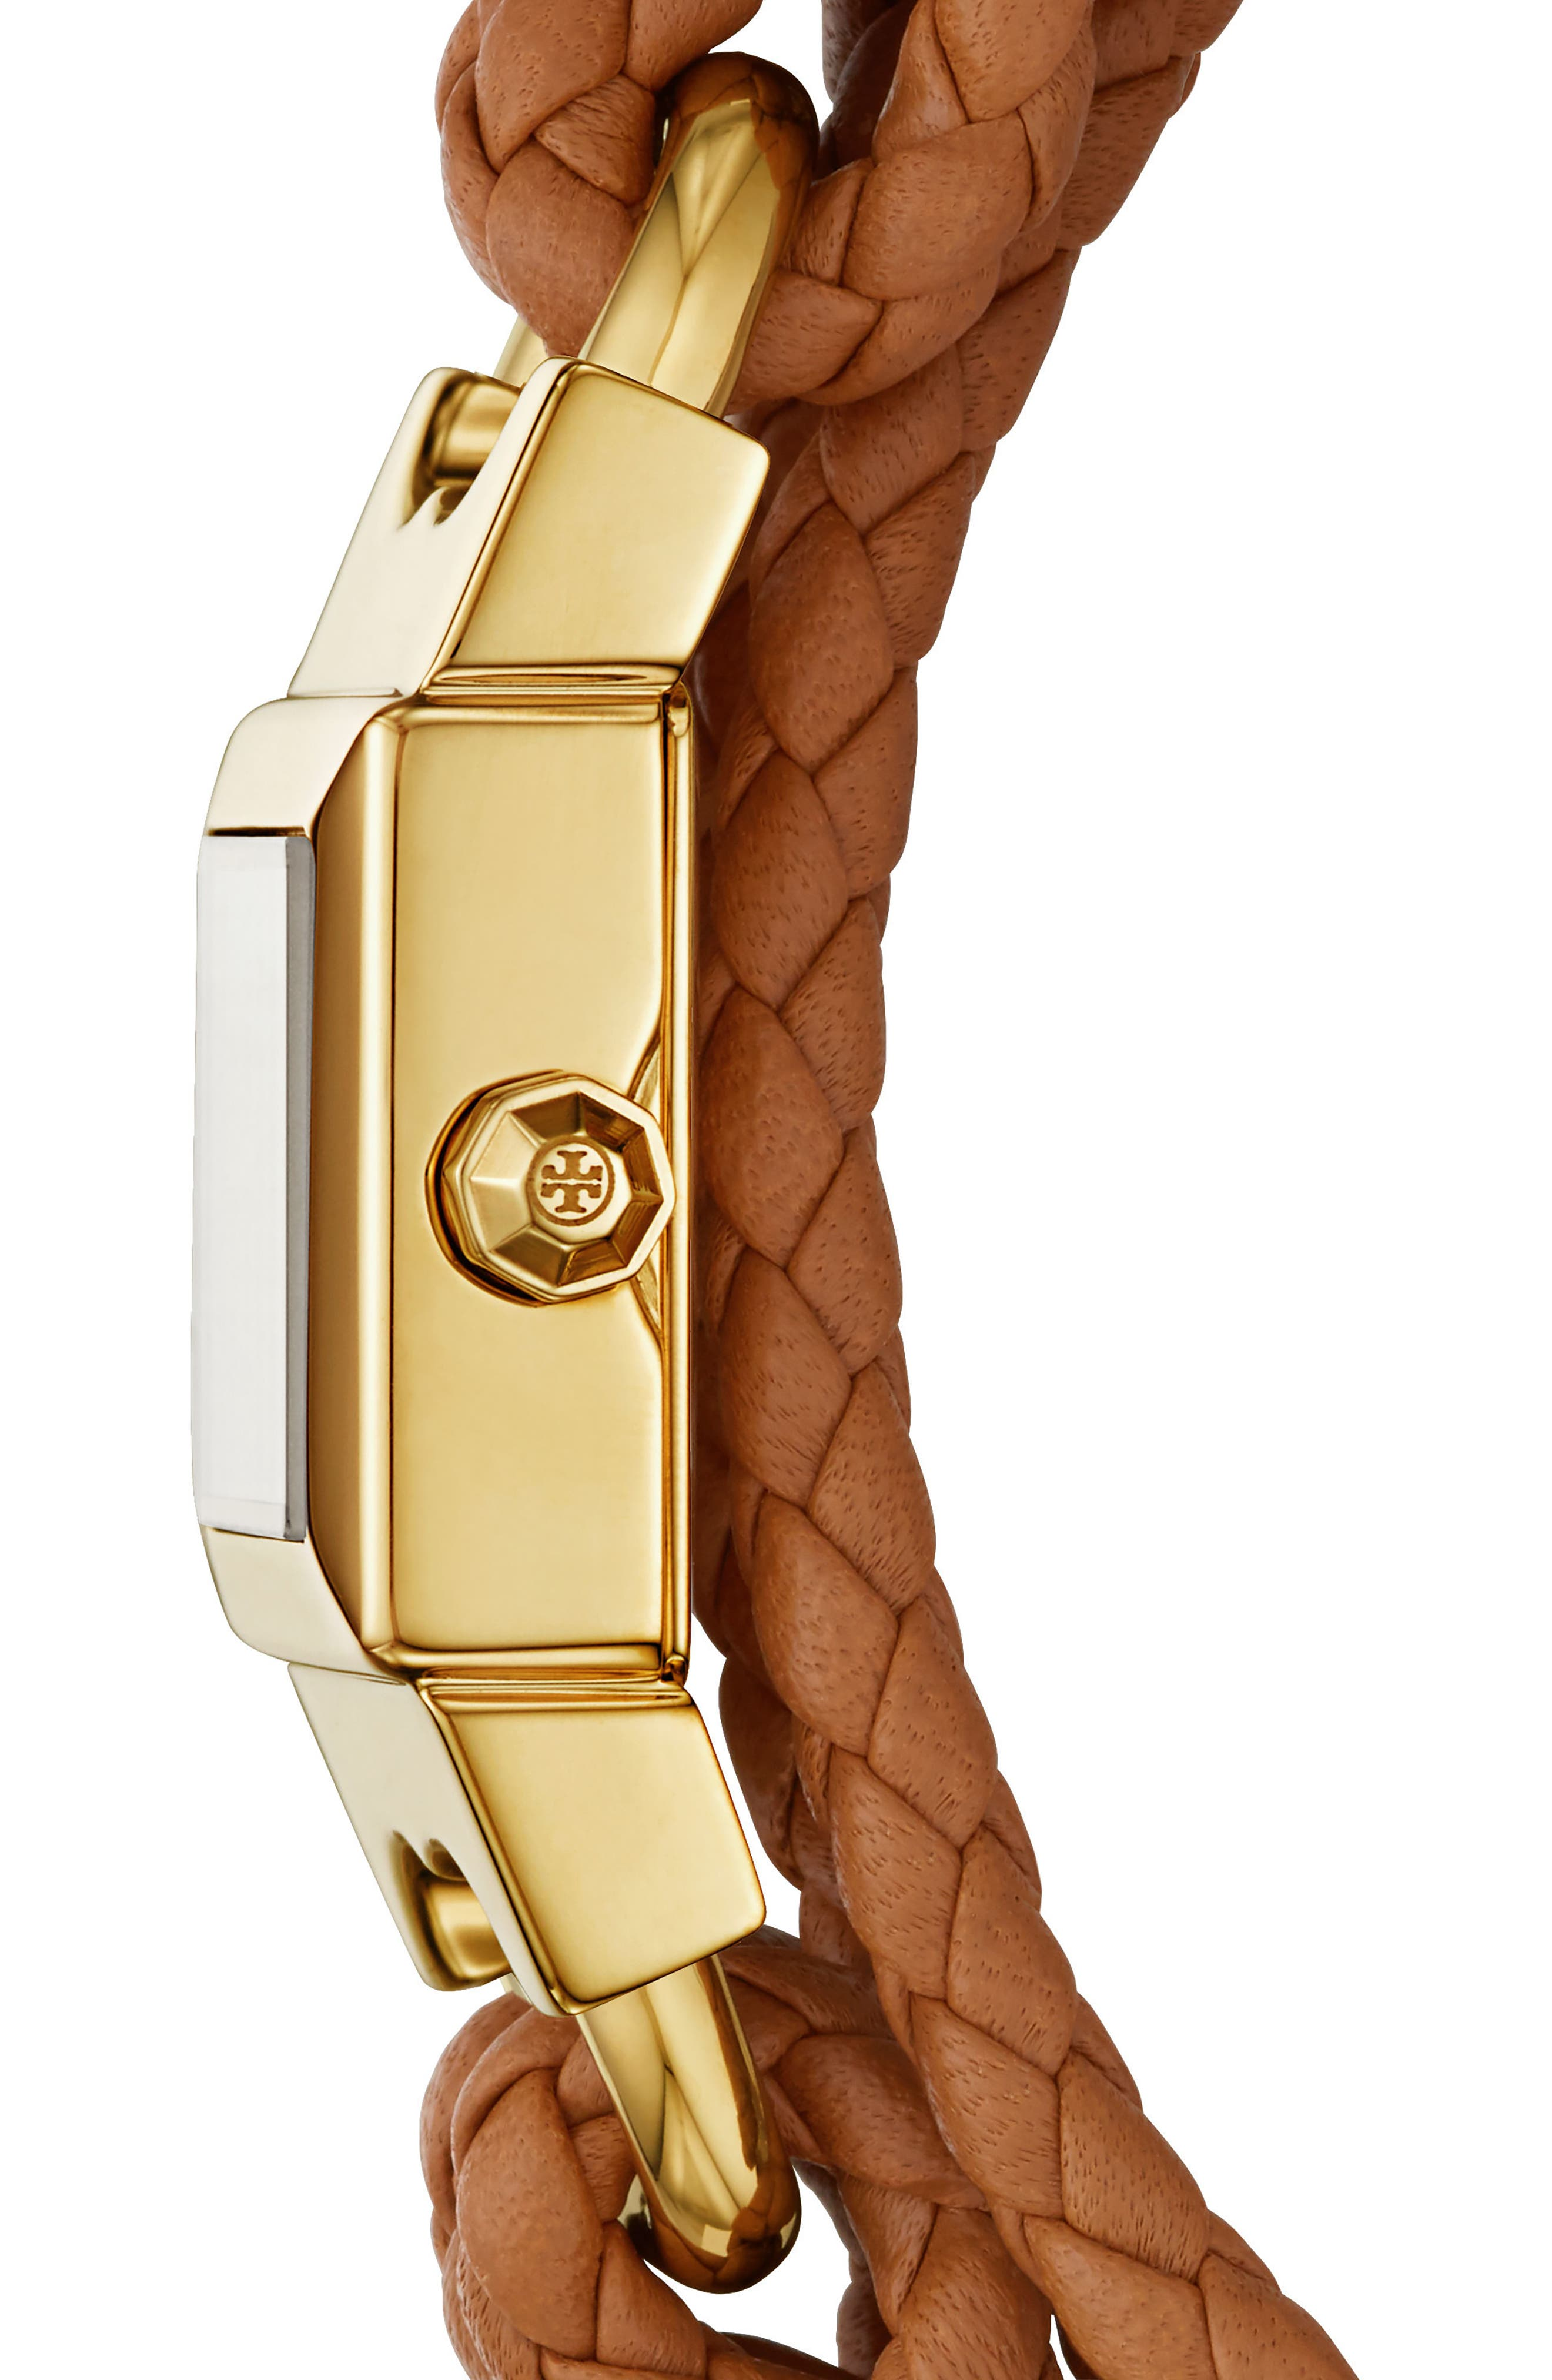 Gemini Link Square Leather Strap Watch, 18mm,                             Alternate thumbnail 2, color,                             Luggage/ Cream/ Gold